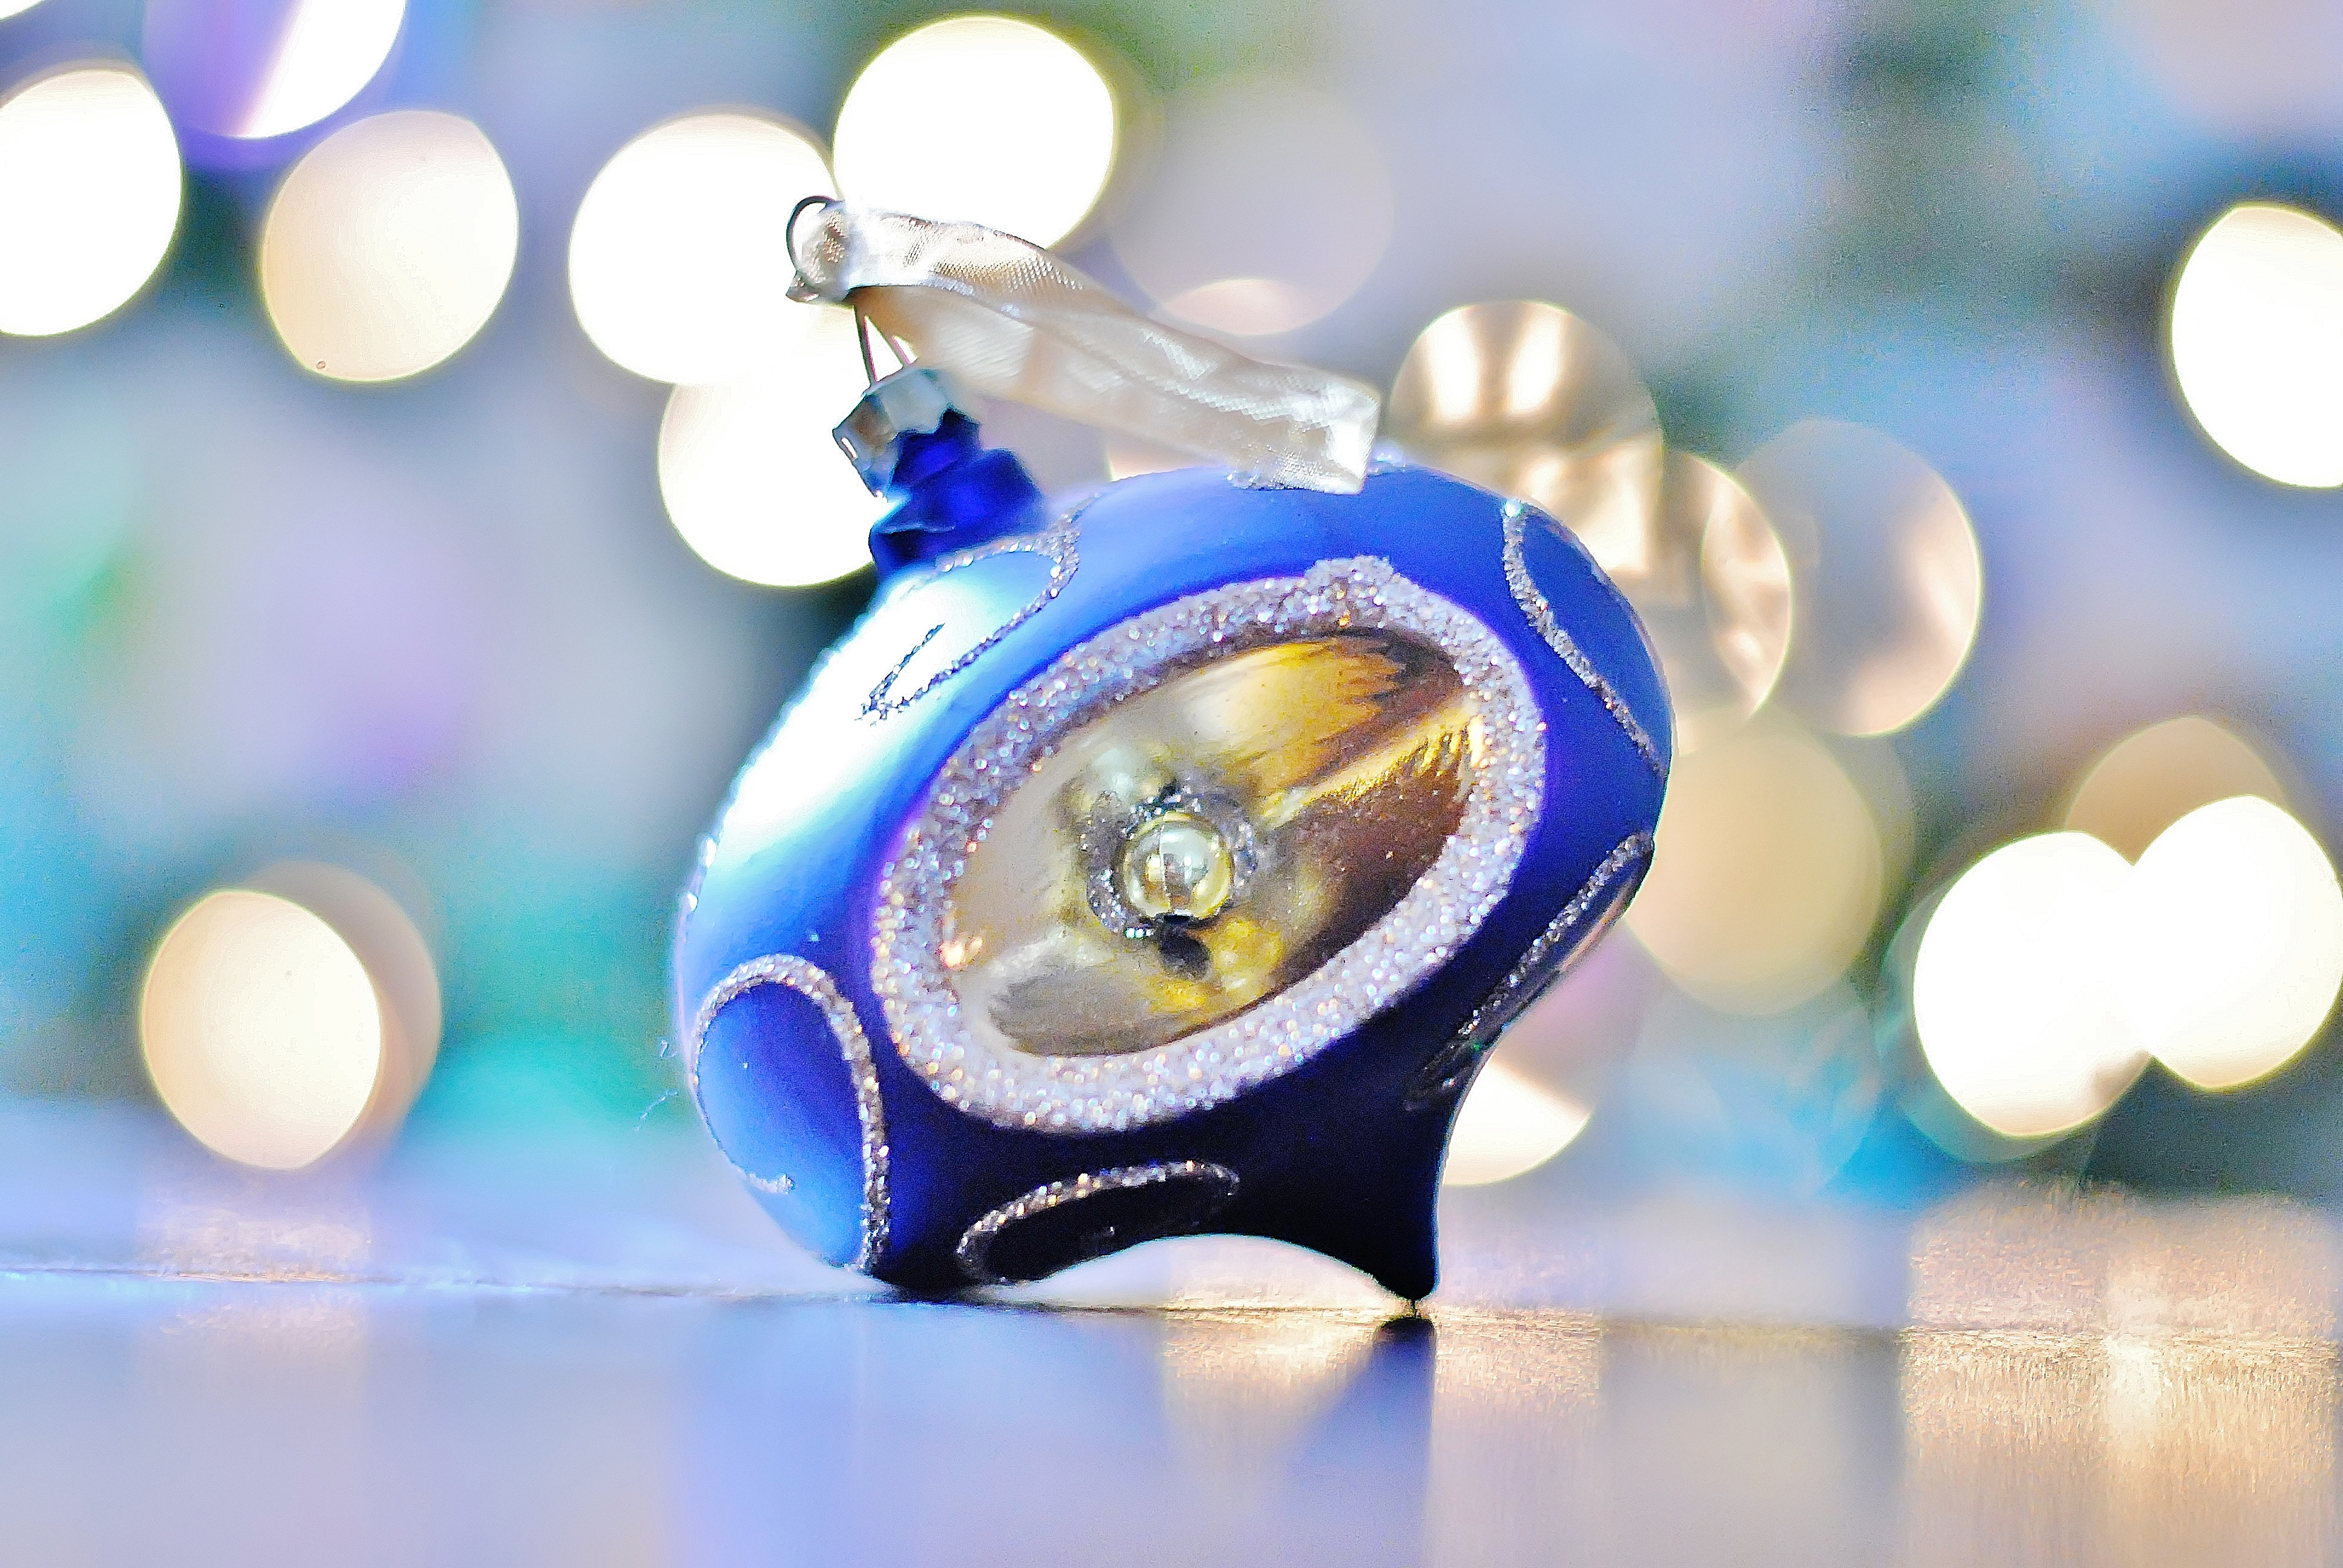 Yearly christmas ornaments - Yearly Christmas Ornaments 31